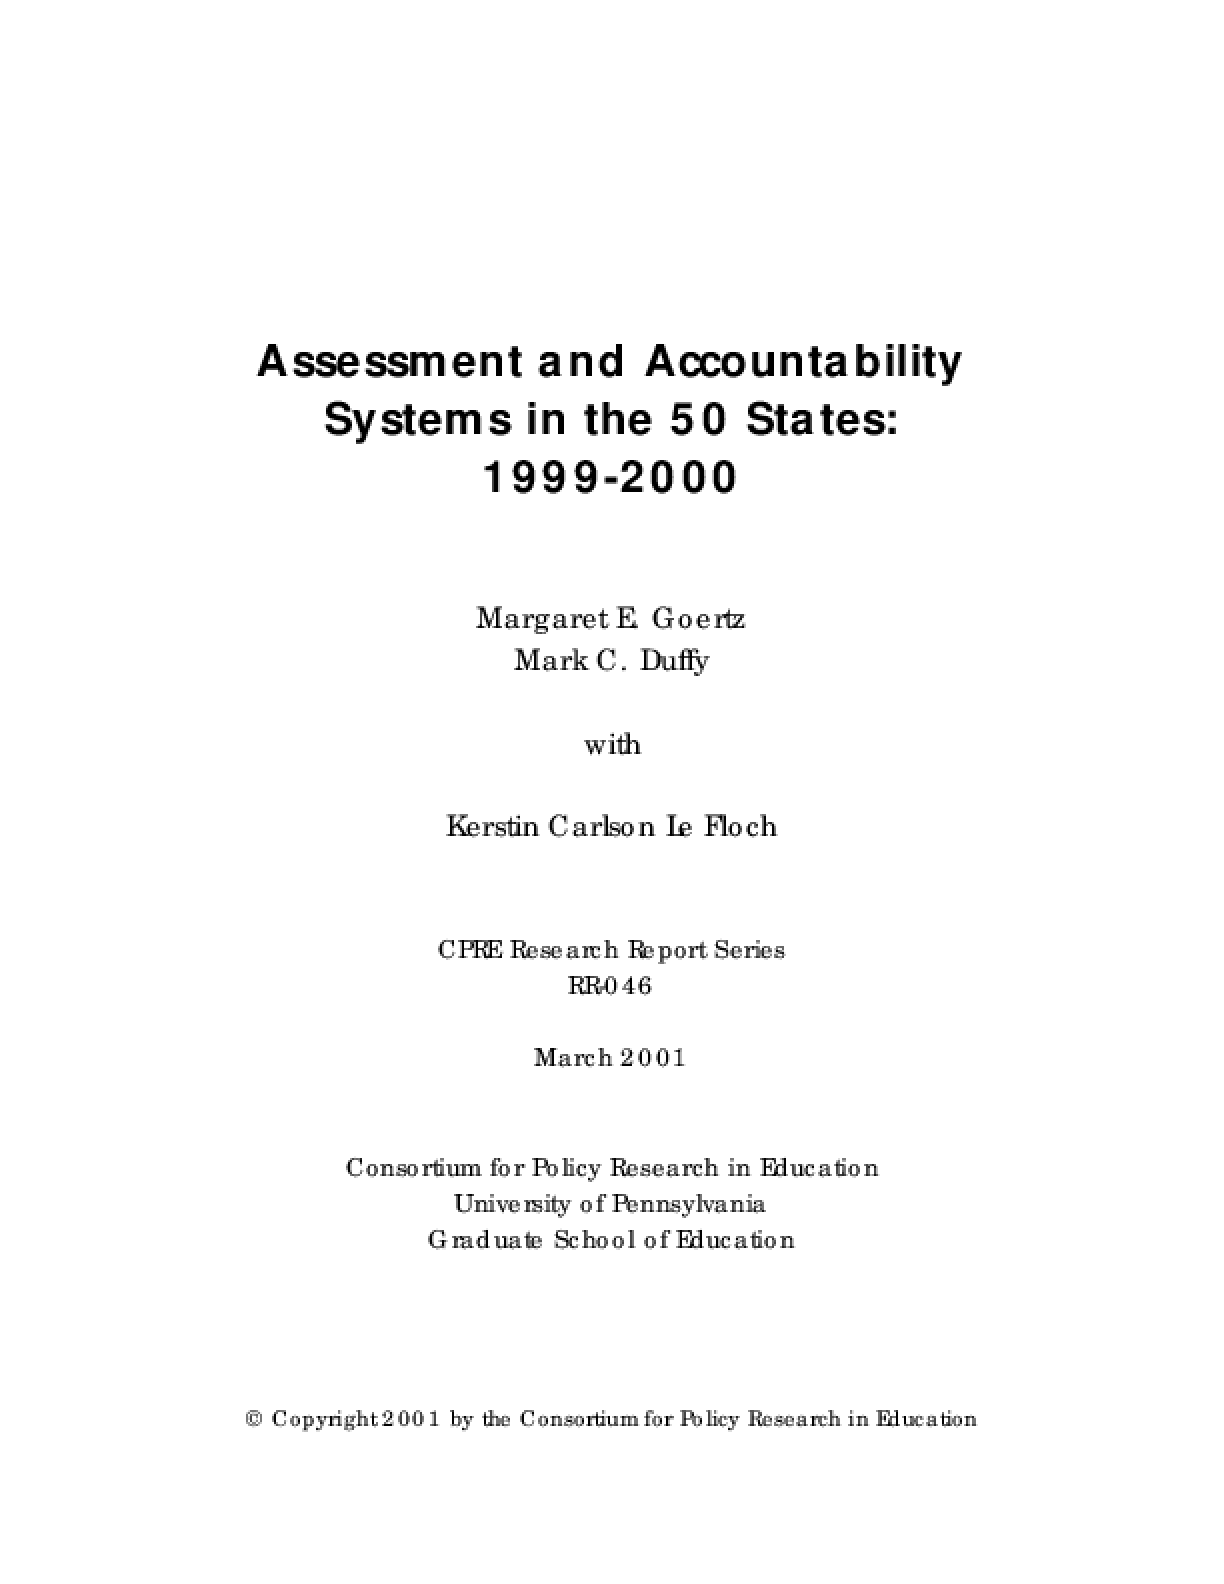 Assessment and Accountability Systems in the 50 States: 1999-2000